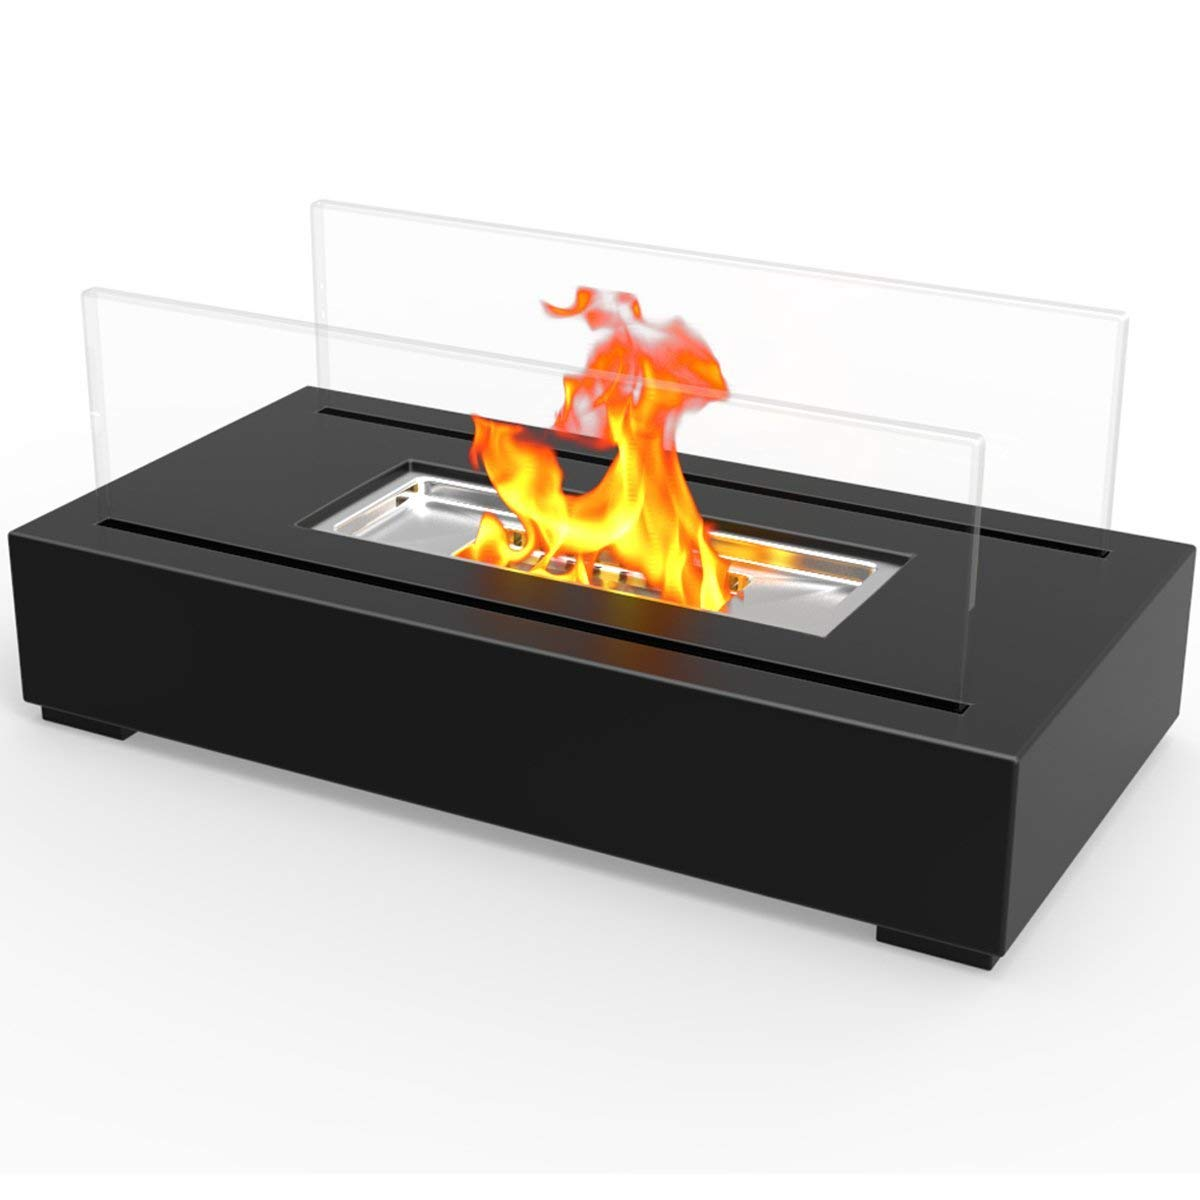 Realistic Clean Burning Like Gel Fireplaces or Propane Firepits Regal Flame Utopia Ventless Indoor Outdoor Fire Pit Tabletop Portable Fire Bowl Pot Bio Ethanol Fireplace in Black